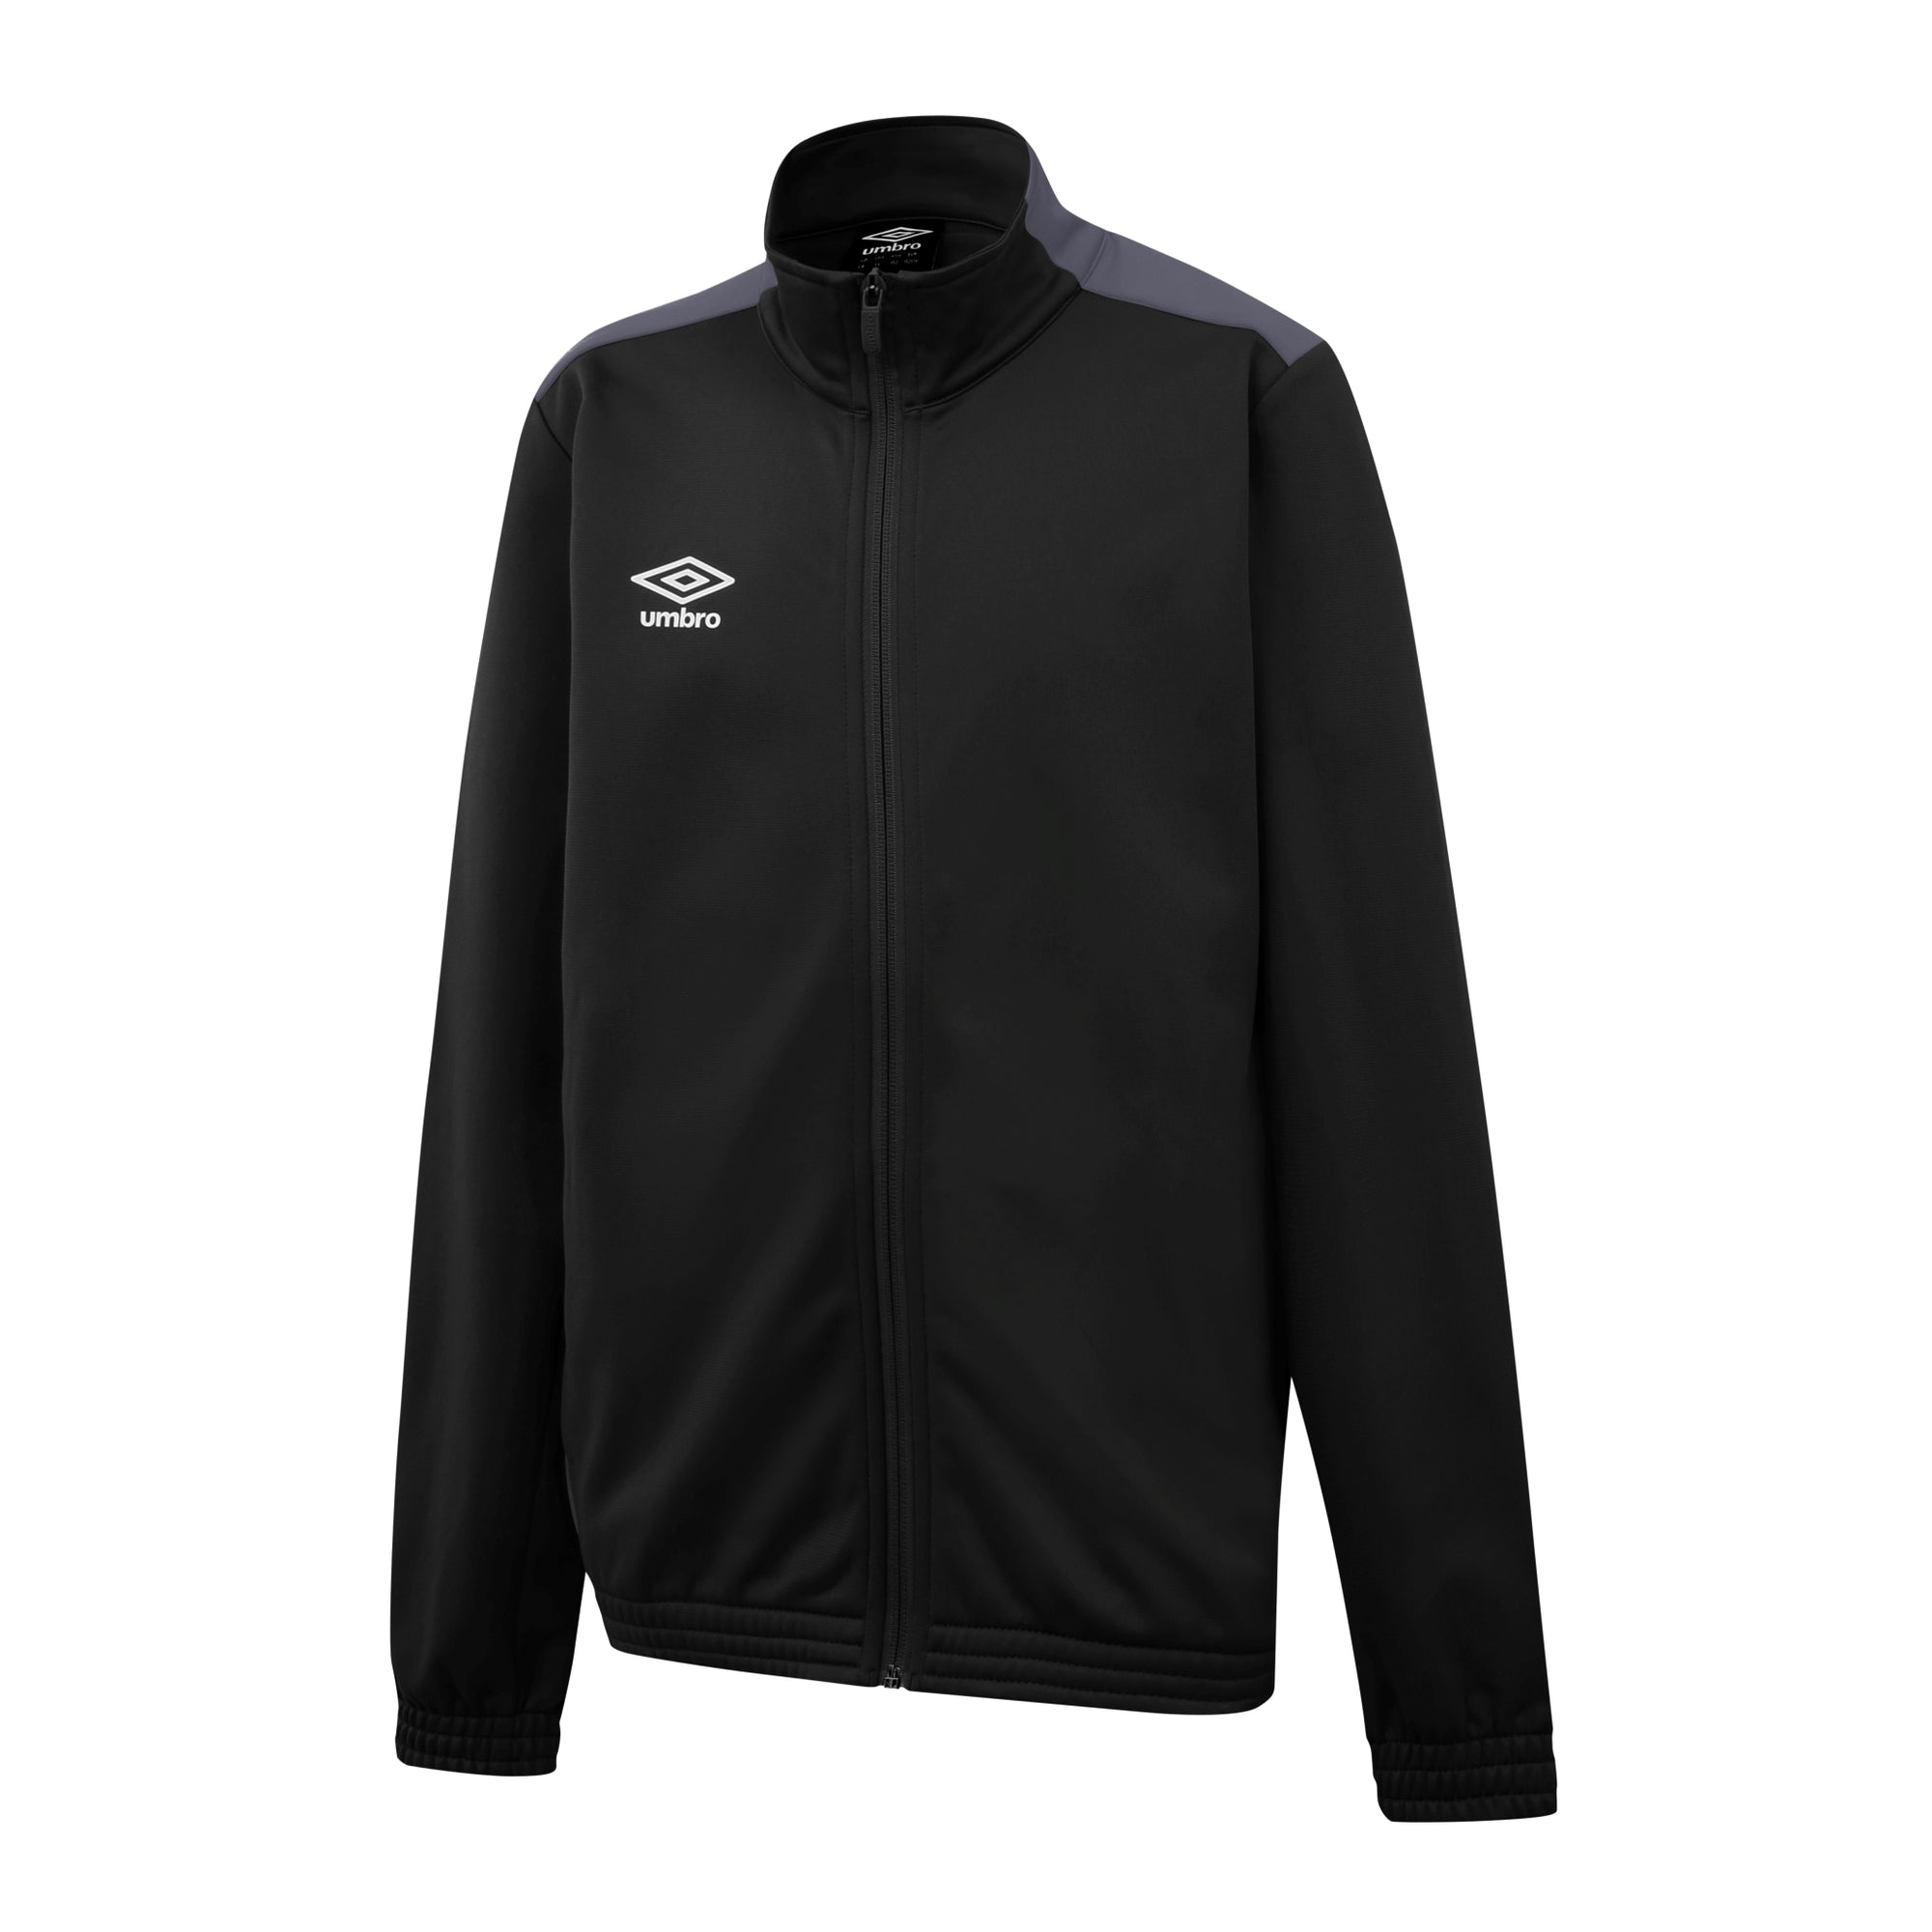 Umbro Training Knitted Jacket - Black/Carbon